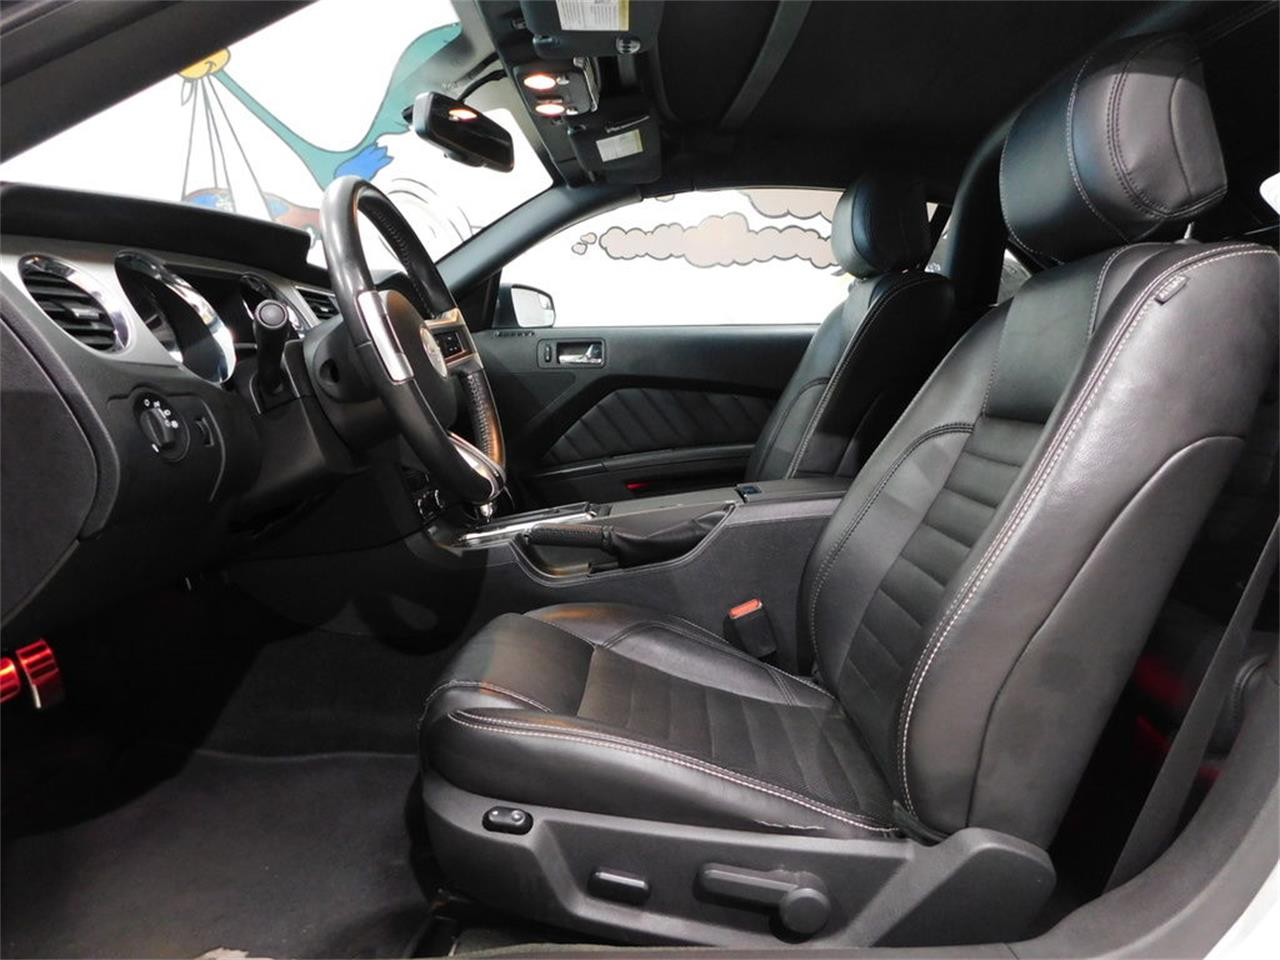 2014 Ford Mustang (CC-1386656) for sale in Hamburg, New York